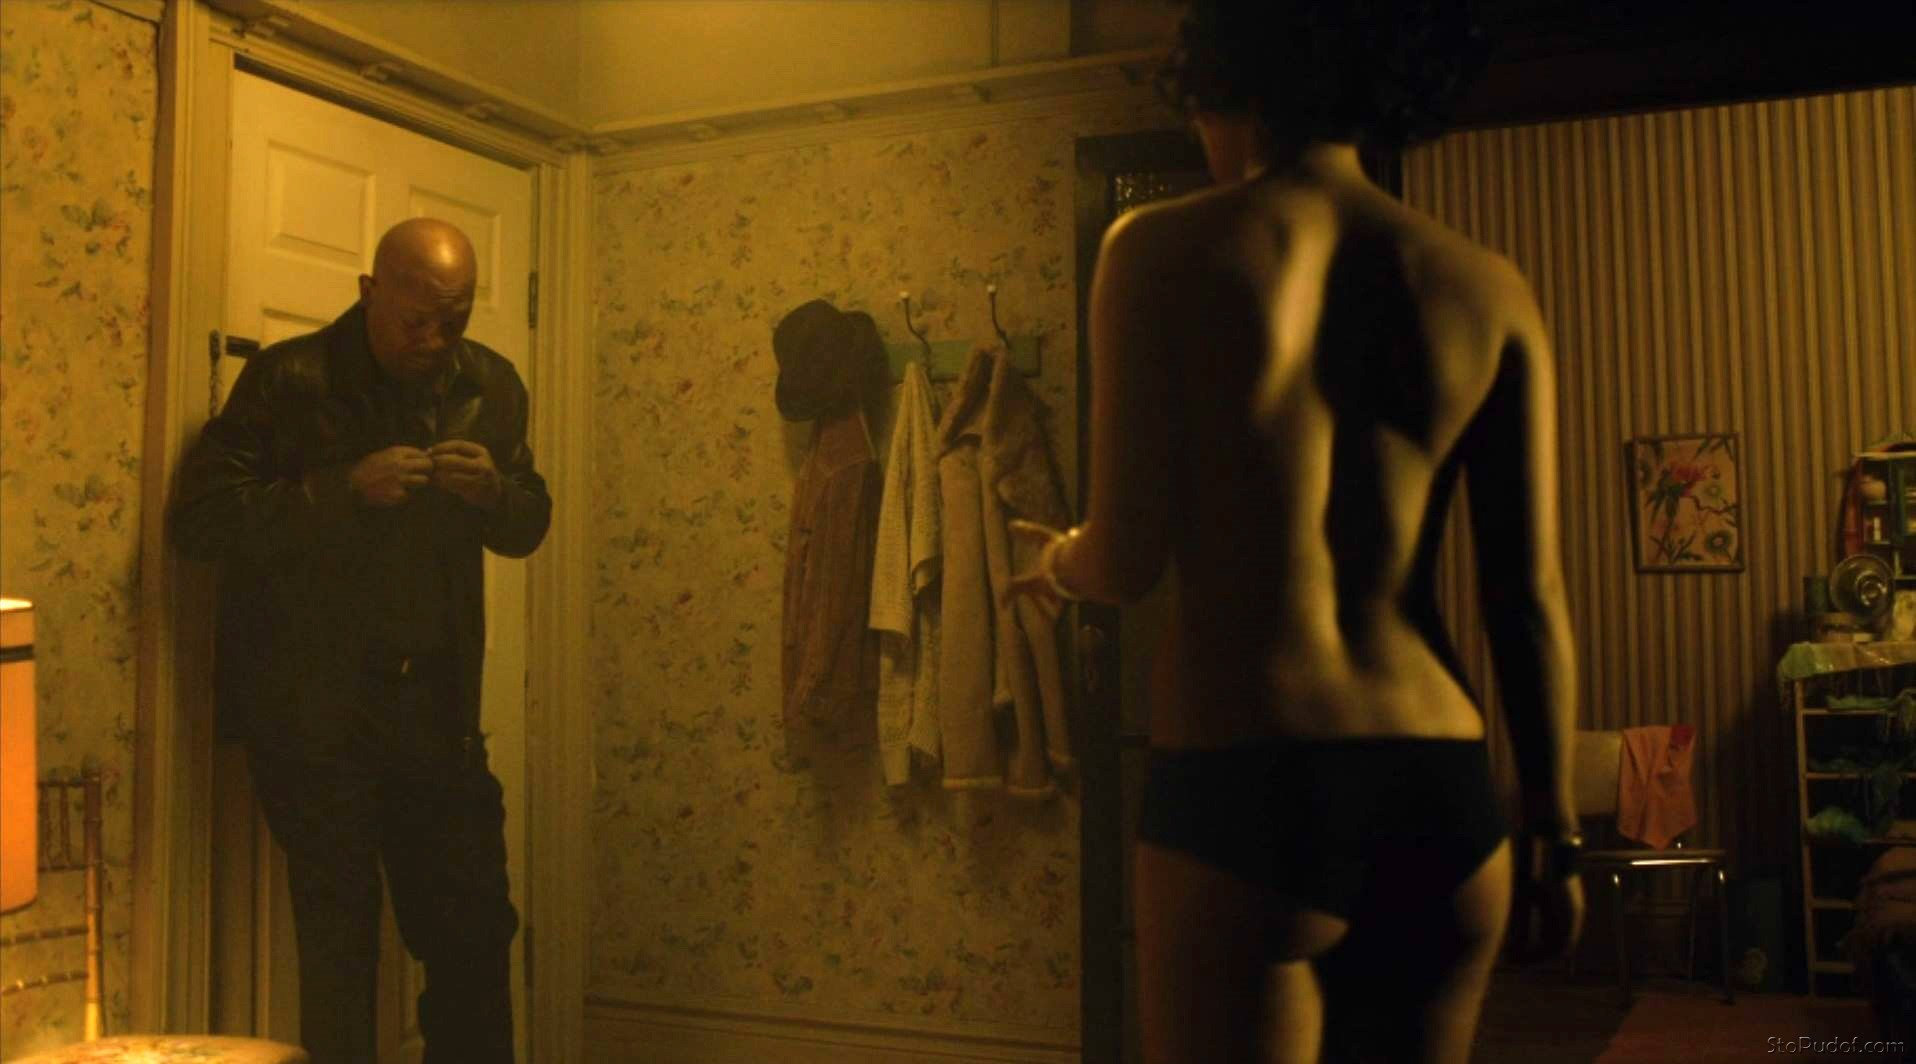 new leaked nude pics of Ruth Negga - UkPhotoSafari